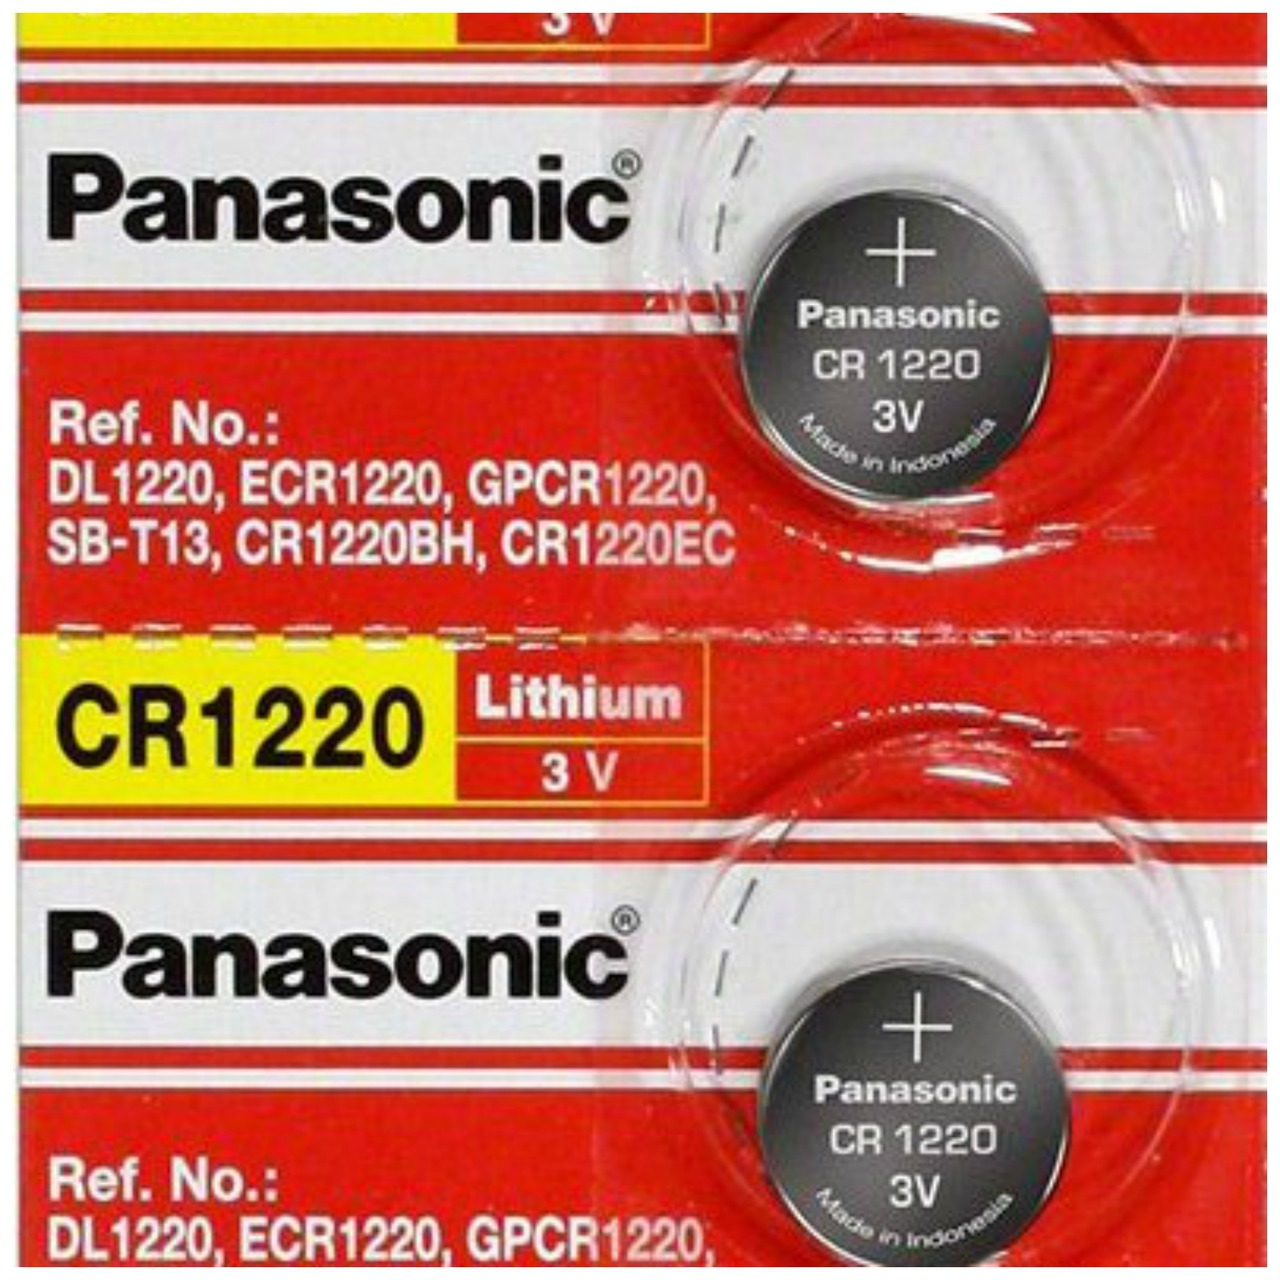 Panasonic CR1220 3V Lithium Coin Battery - 2 Pack + FREE SHIPPING!